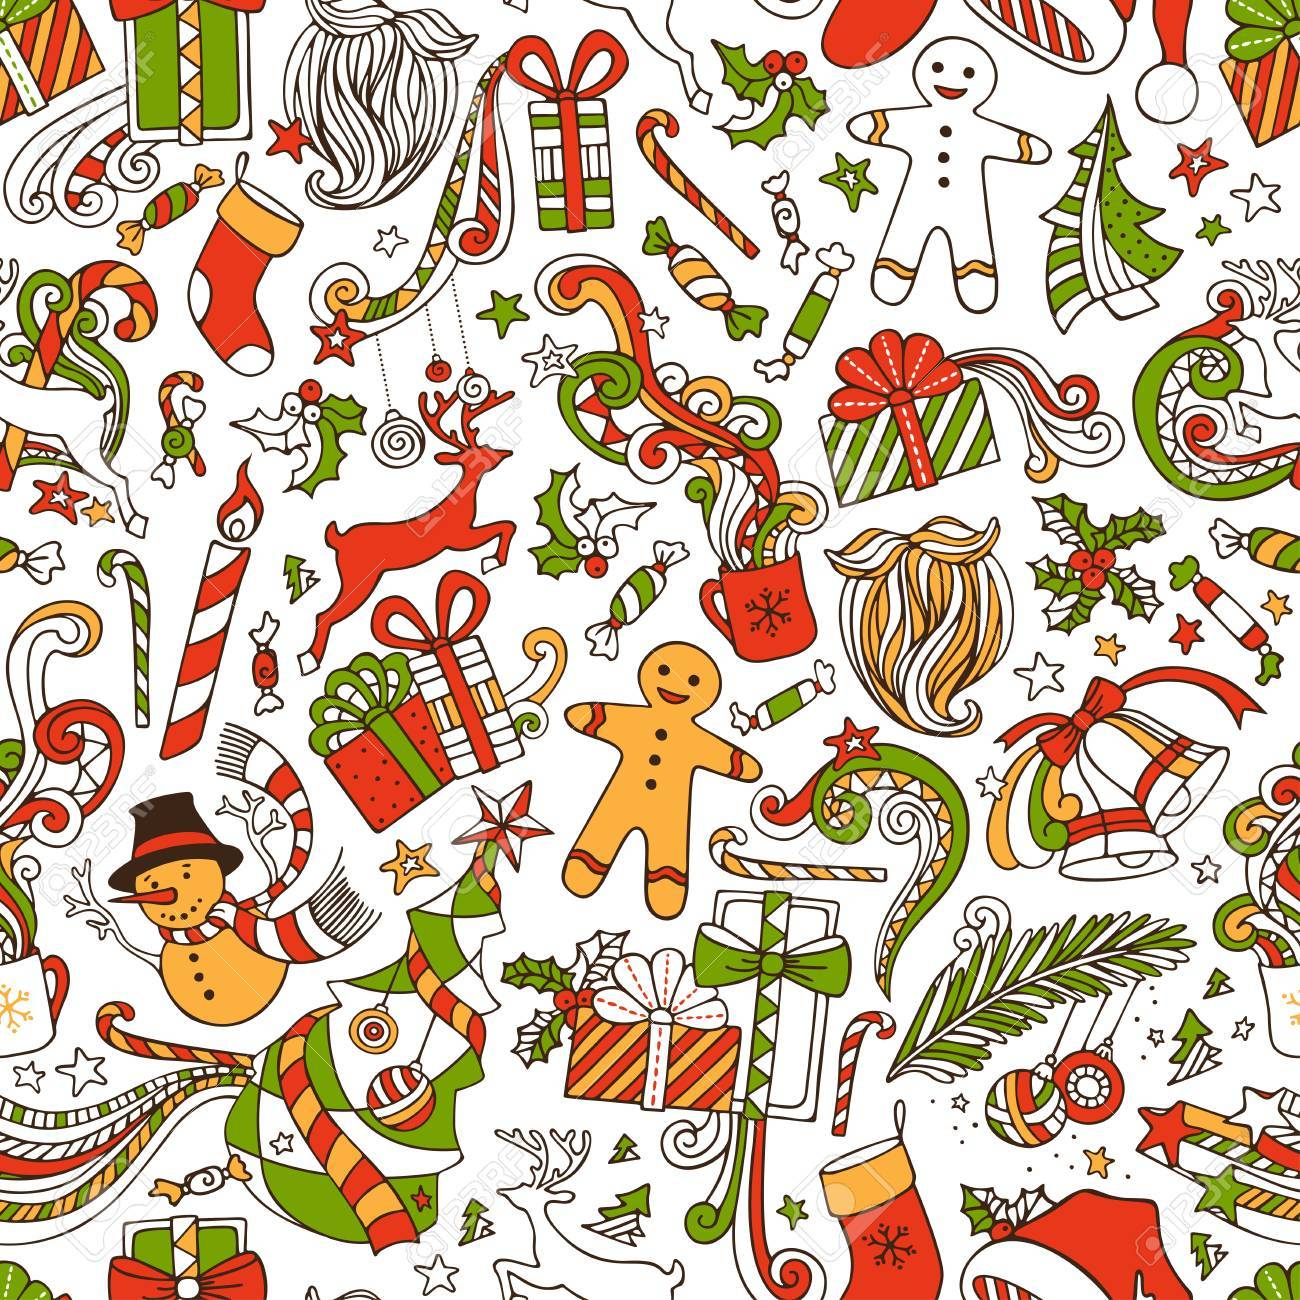 Boundless Funny Christmas Wallpaper. Seamless hand,drawn pattern